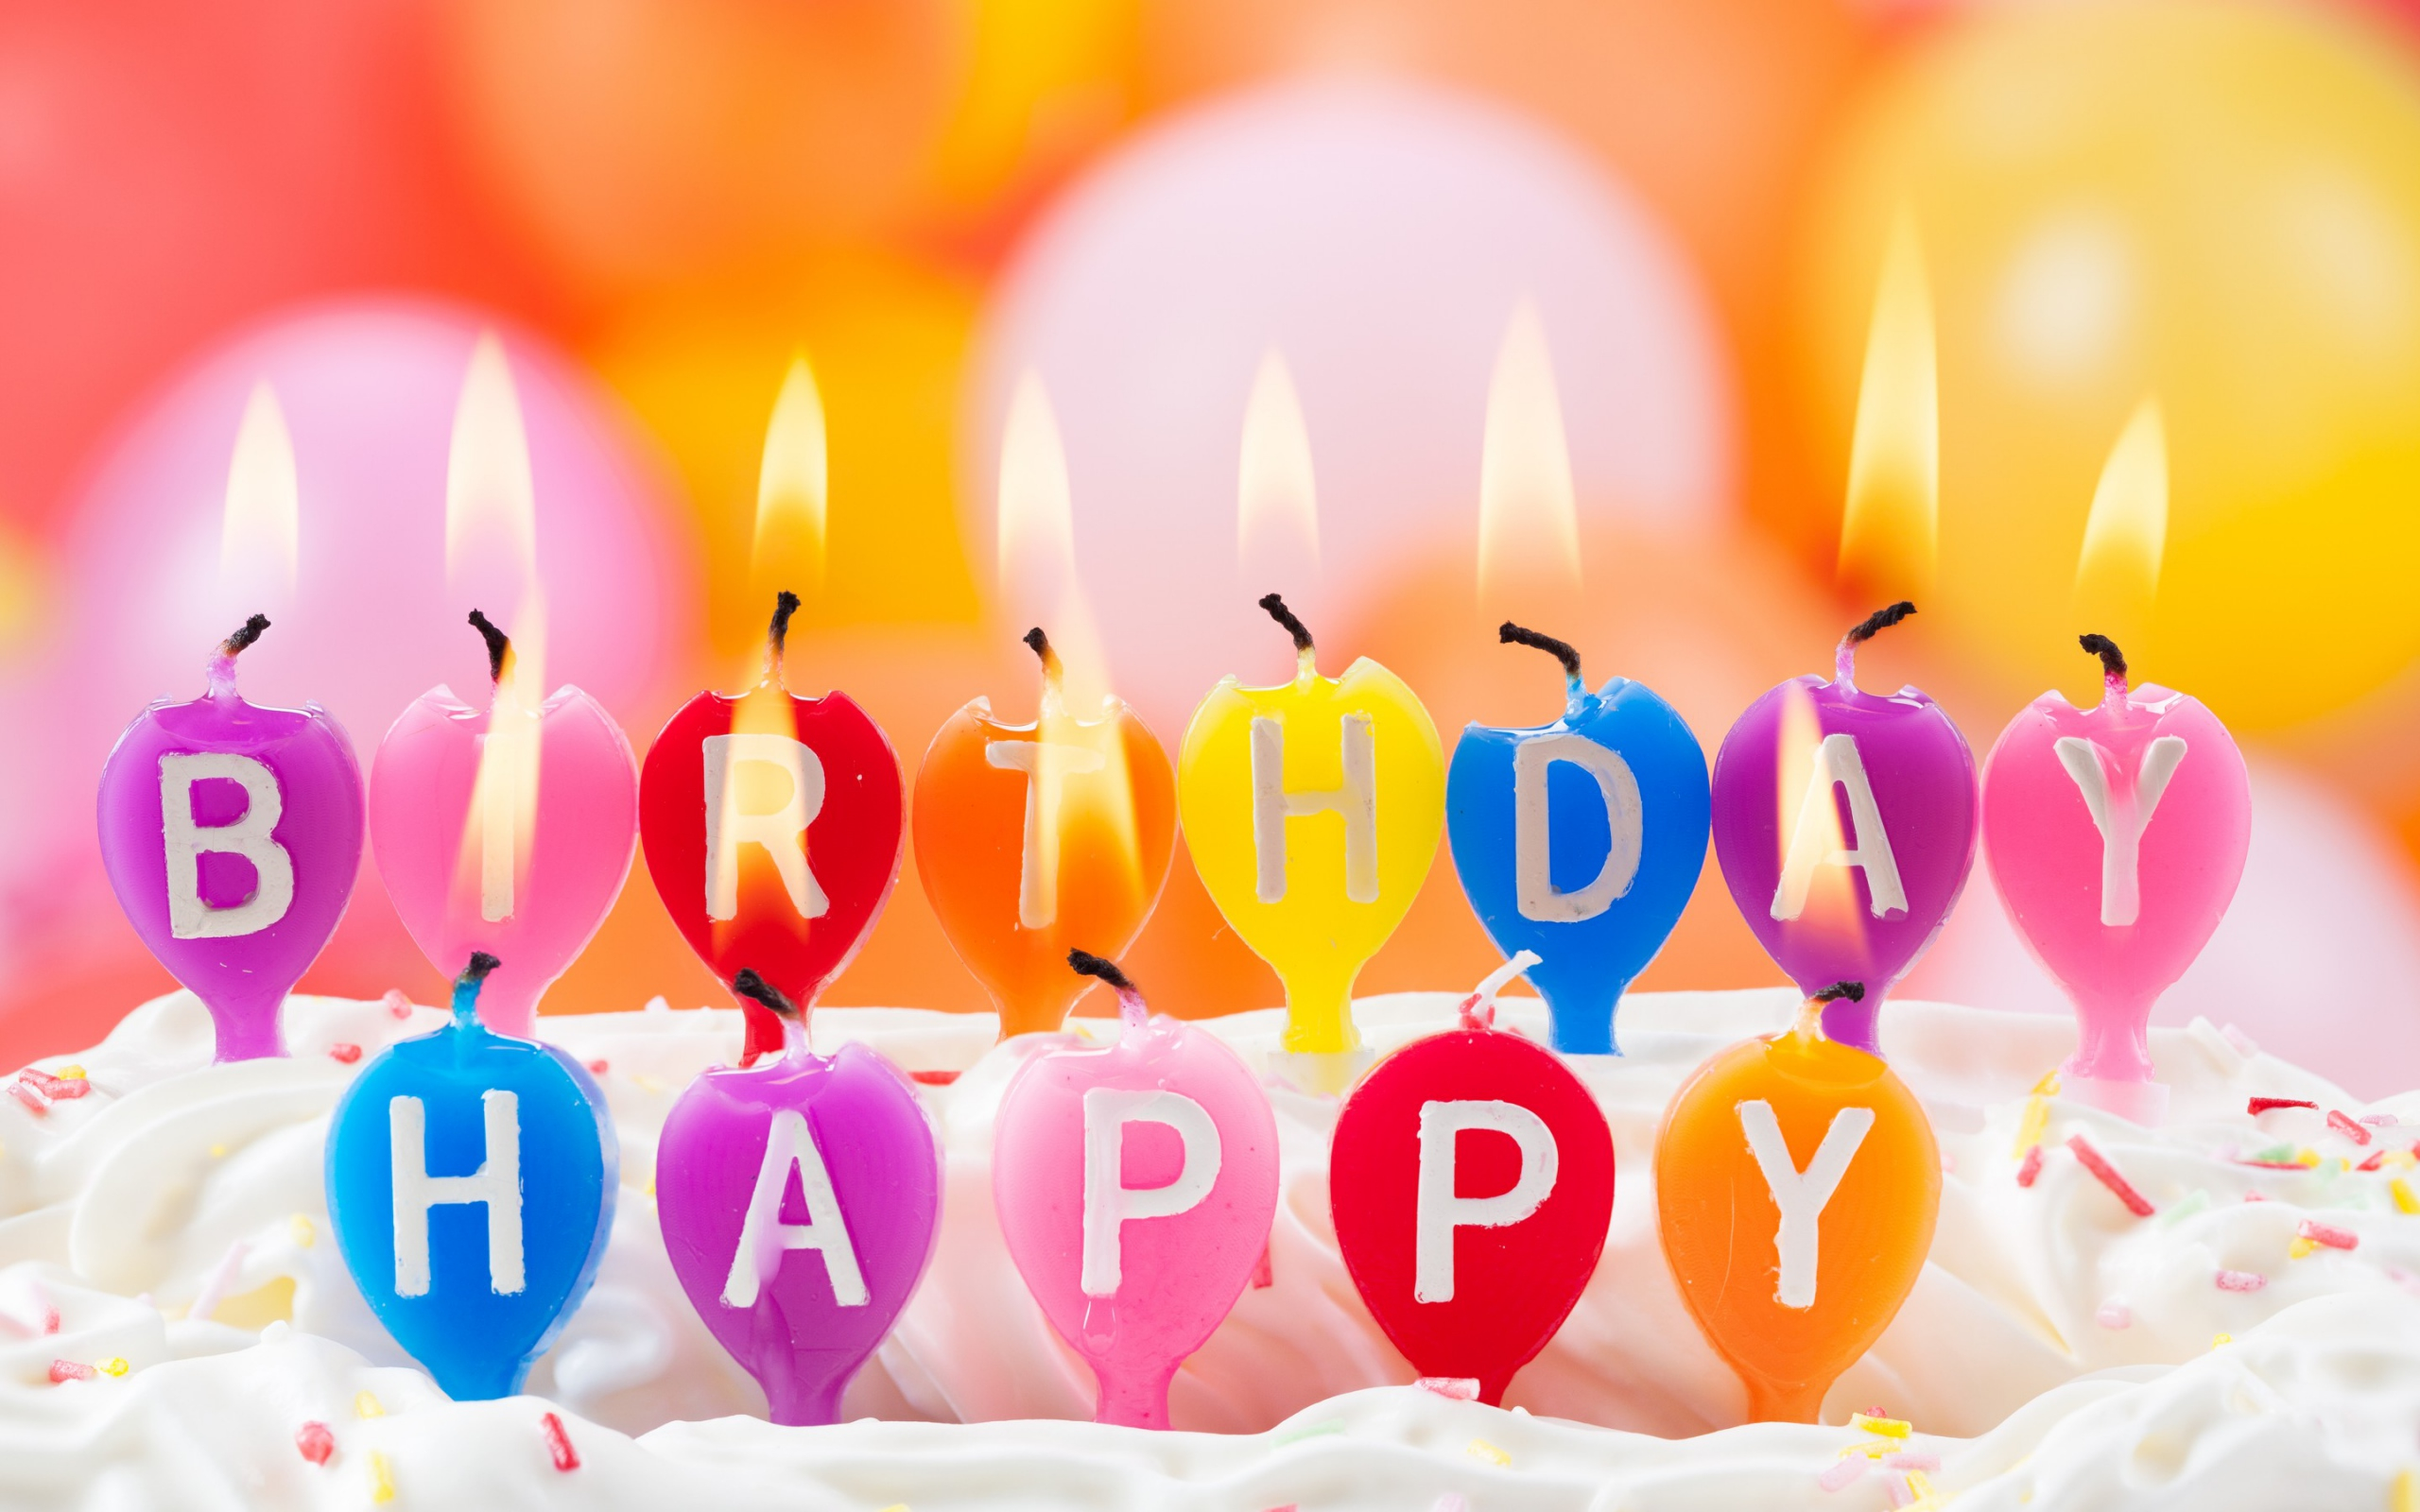 Birthday Cakes With Candles Birthday Cakes With Candles And Flowers Hd Wallpaper Background Images